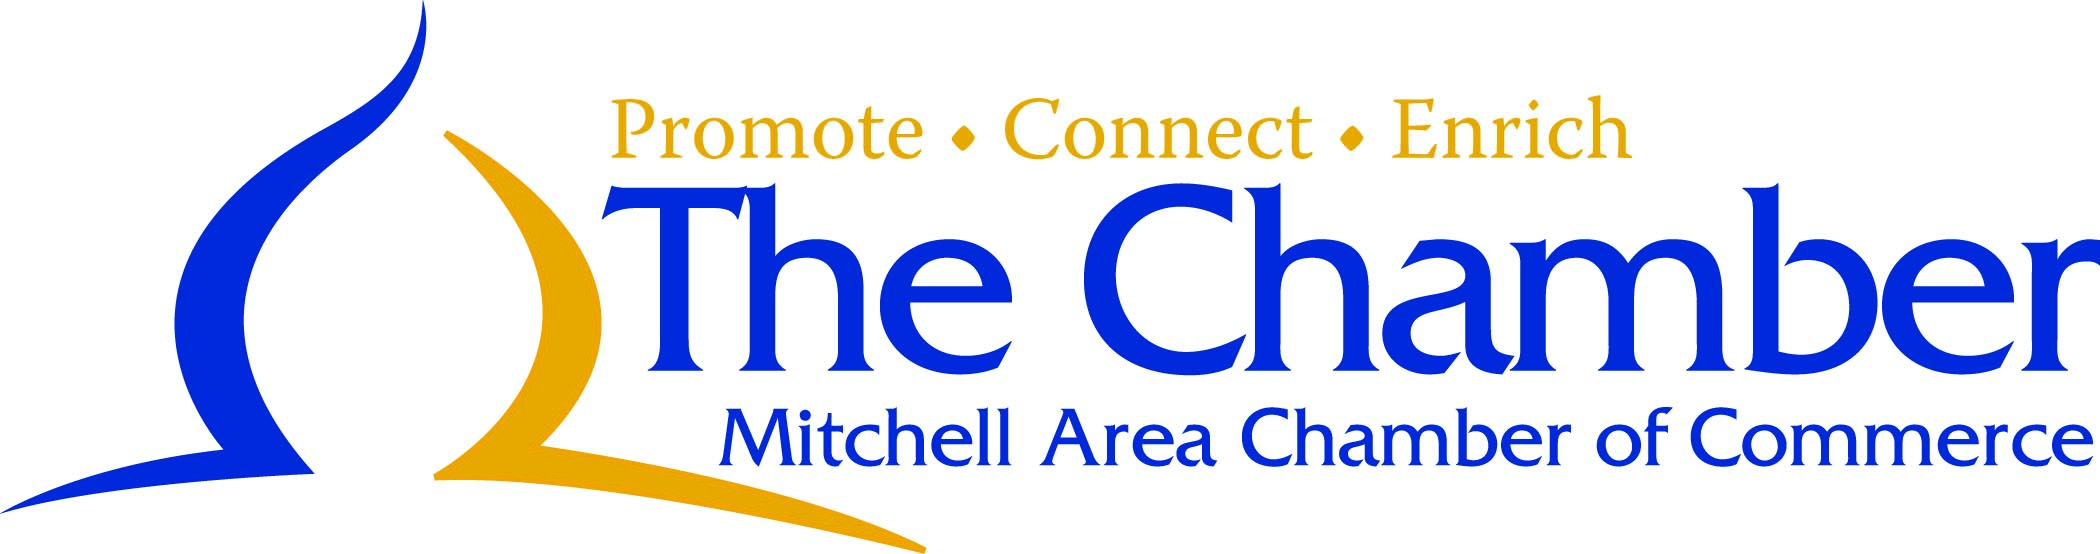 Mitchell Area Chamber of Commerce